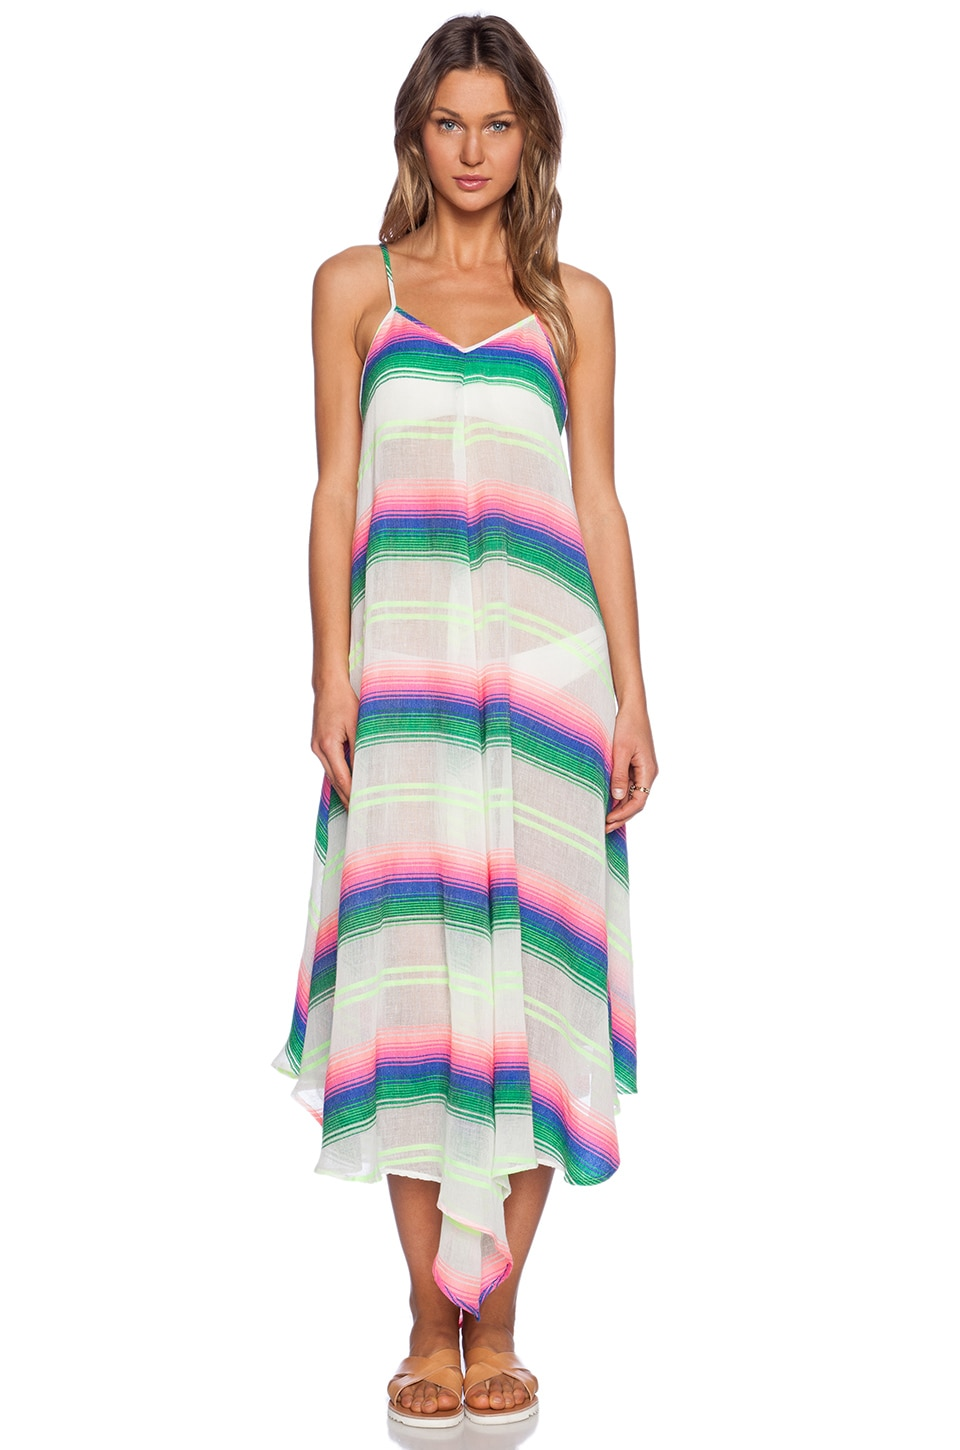 Mara Hoffman Maxi Dress in Rainbow Stripe Gauze | REVOLVE